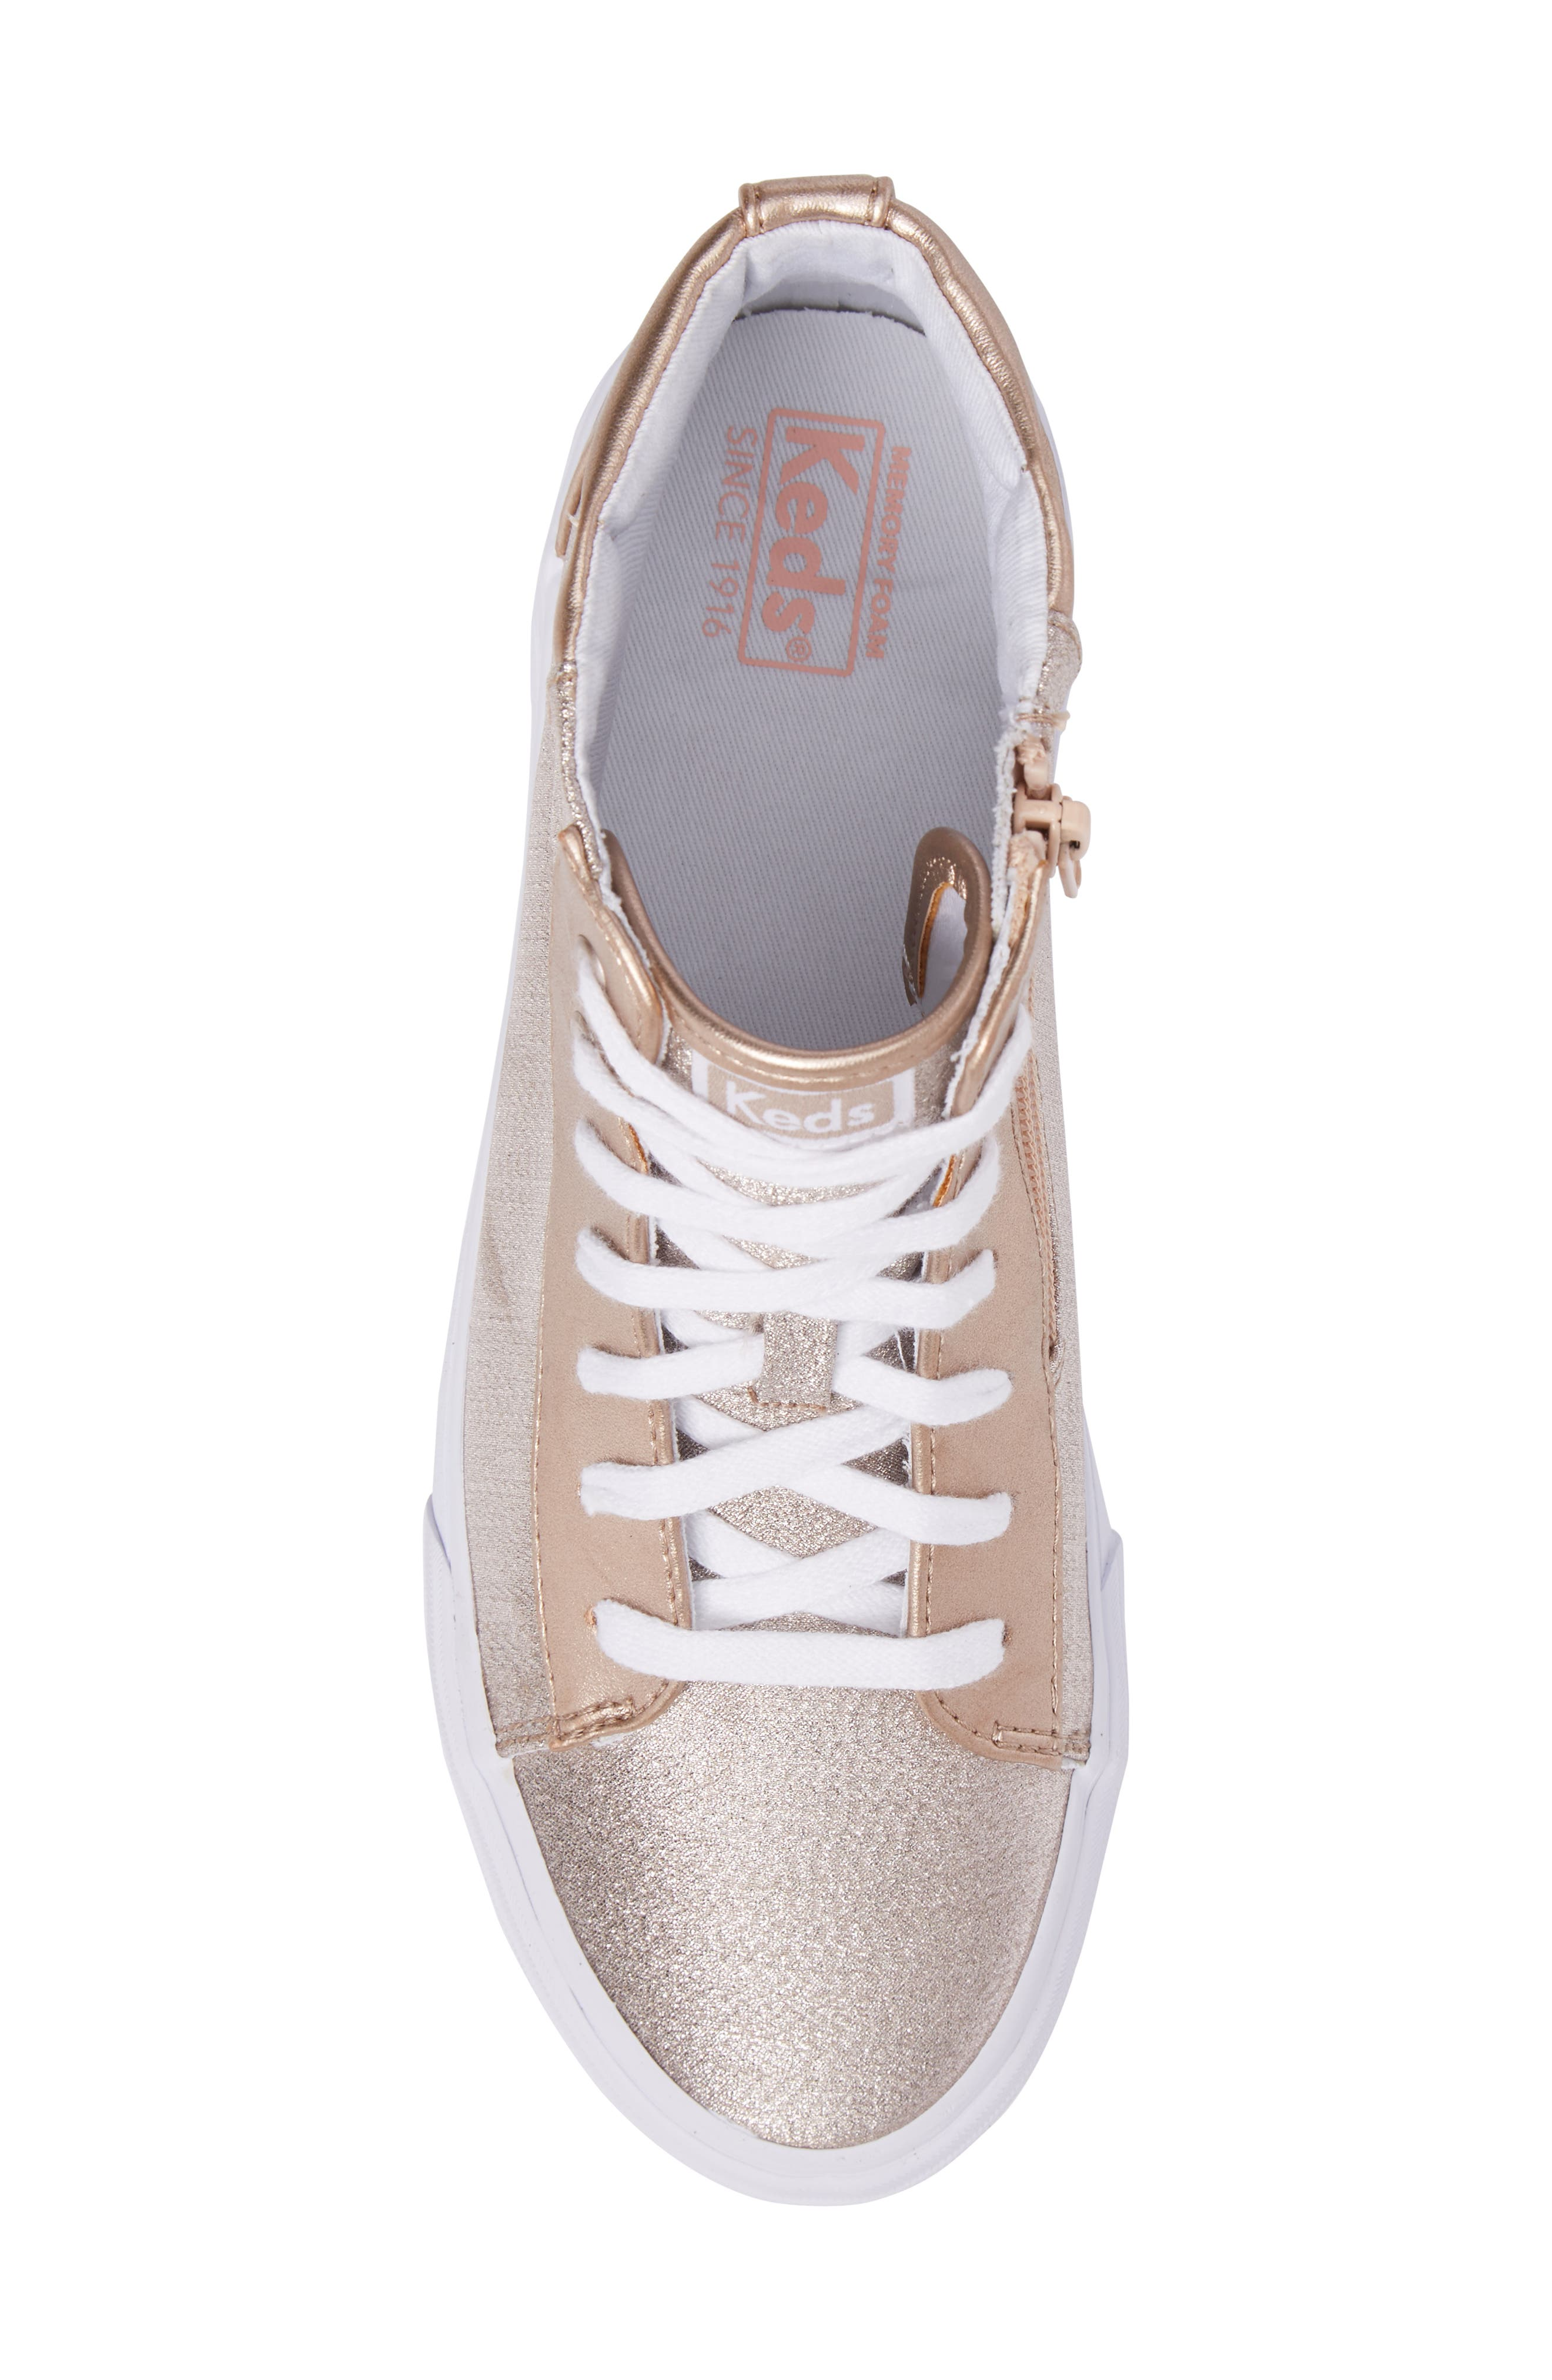 Double Up High Top Sneaker,                             Alternate thumbnail 5, color,                             220